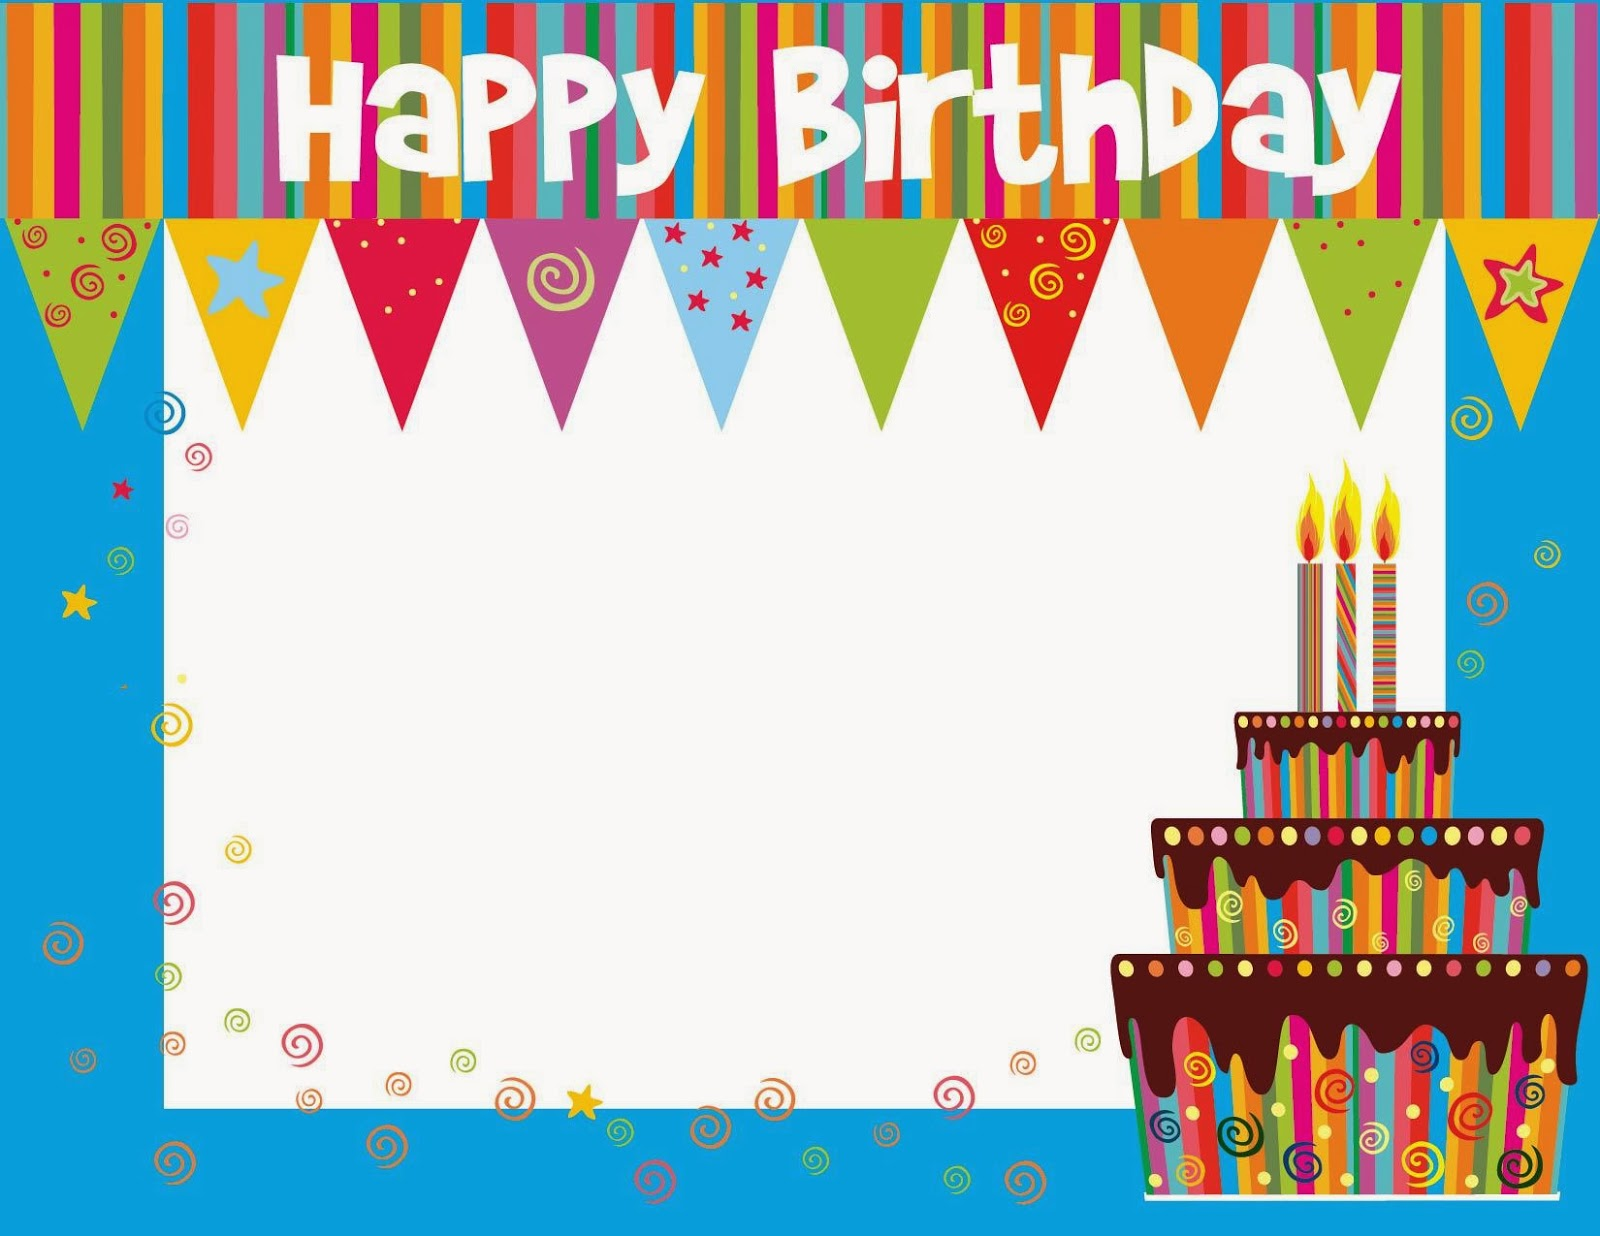 Printable Bday Cards Idas Ponderresearch Co